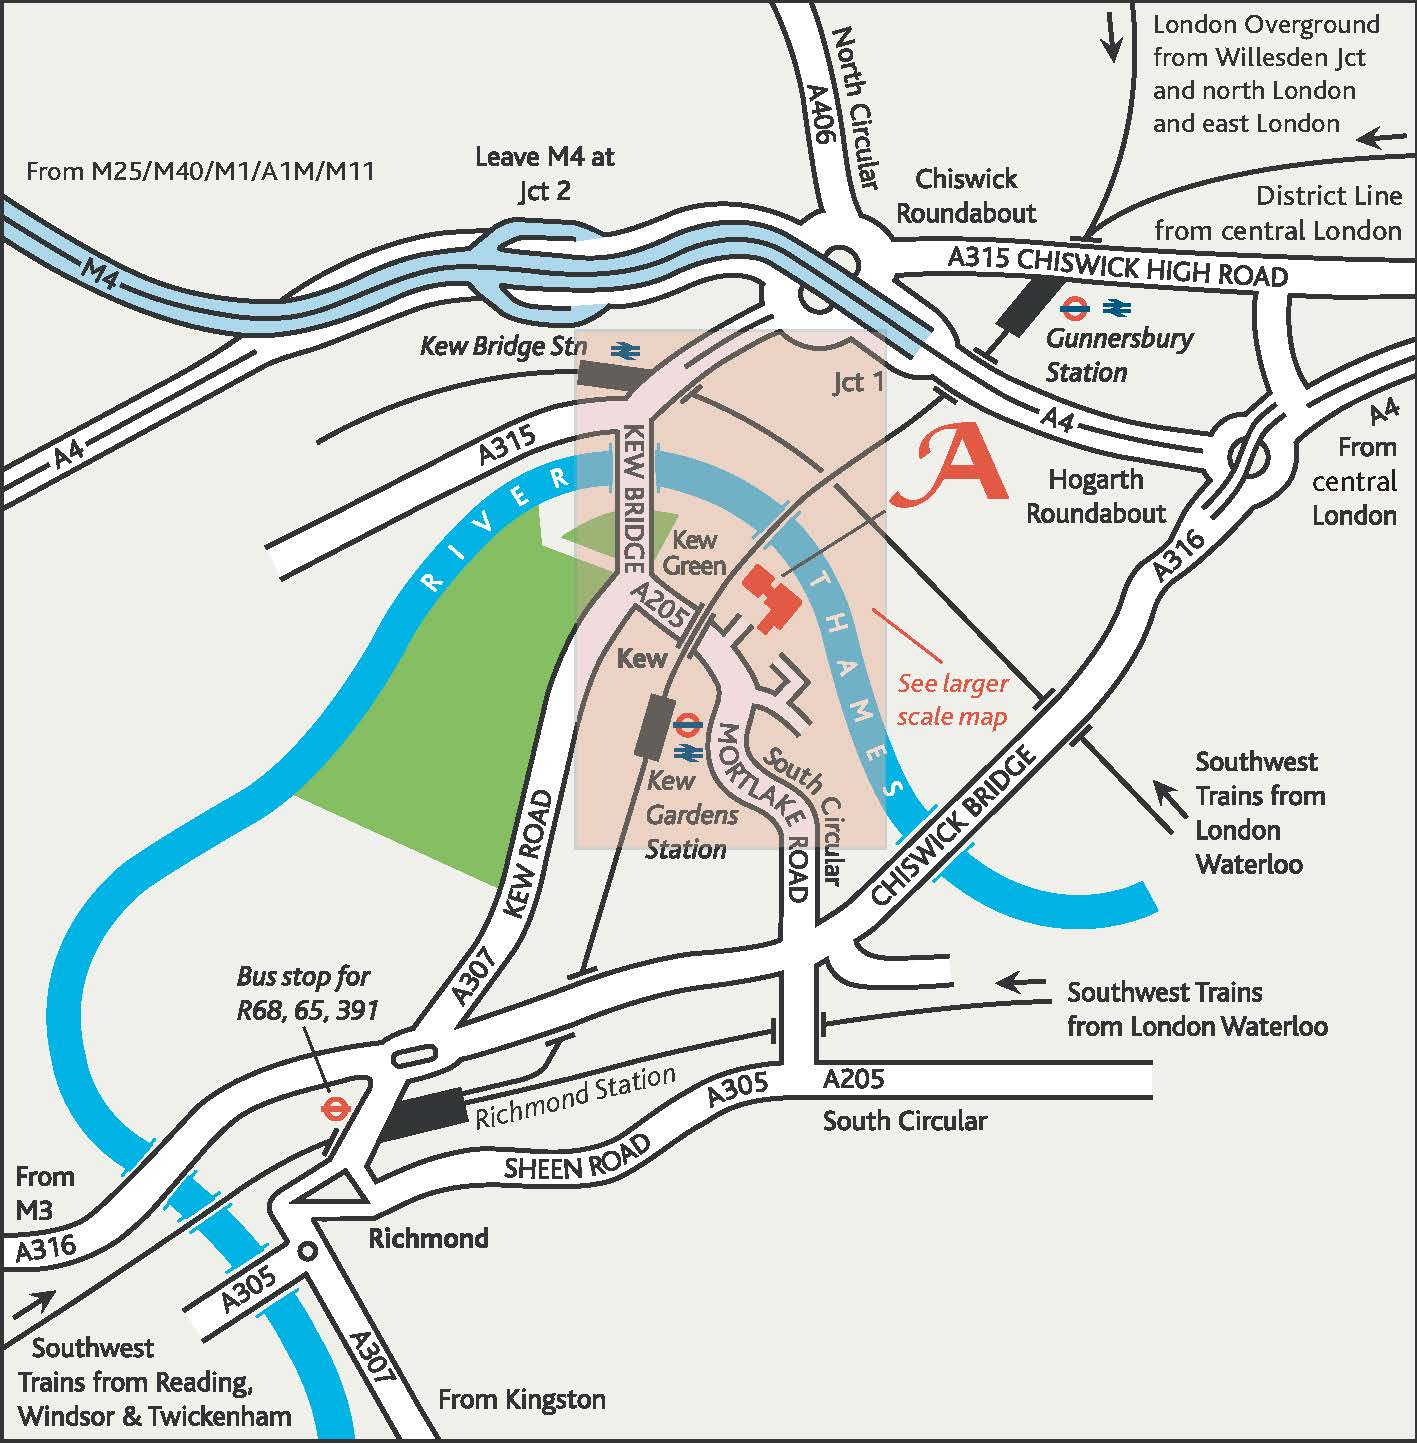 A map of our wider area, showing our transport links.